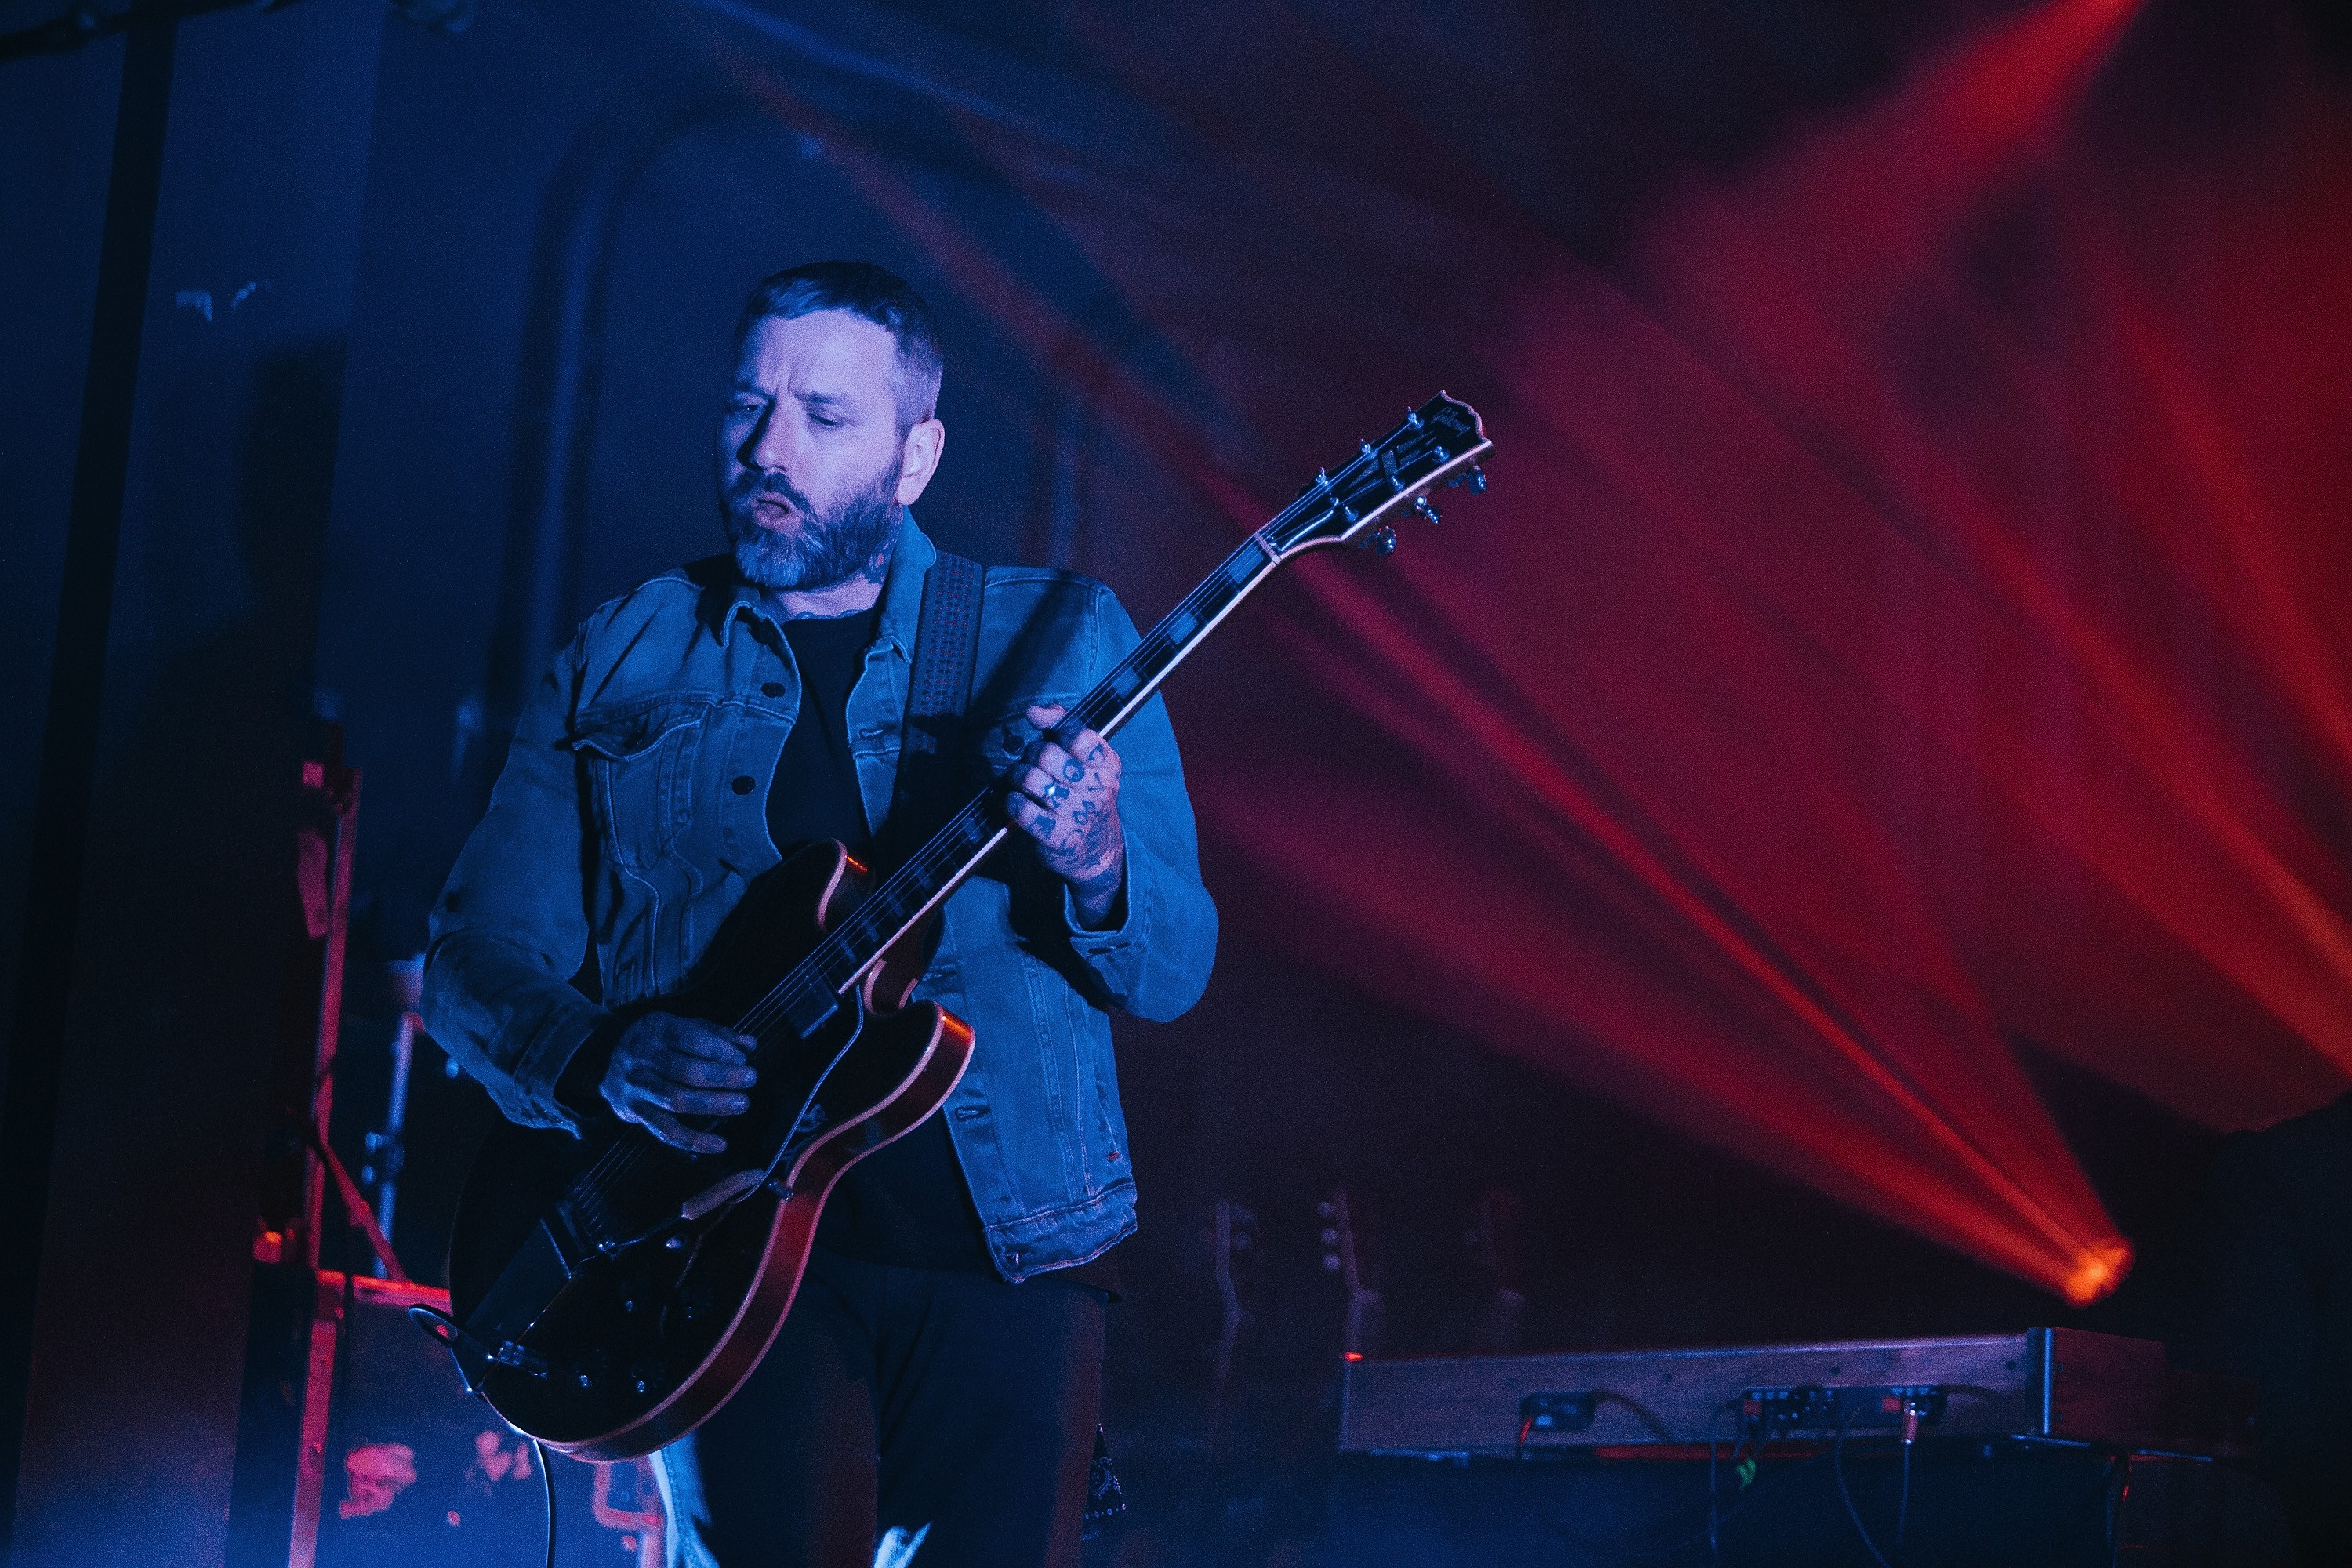 BIRMINGHAM, AL - MARCH 06:  Dallas Green of City and Colour performs at Iron City on March 6, 2017 in Birmingham, Alabama.  (Photo by David A. Smith/Getty Images) (Foto: Getty Images)